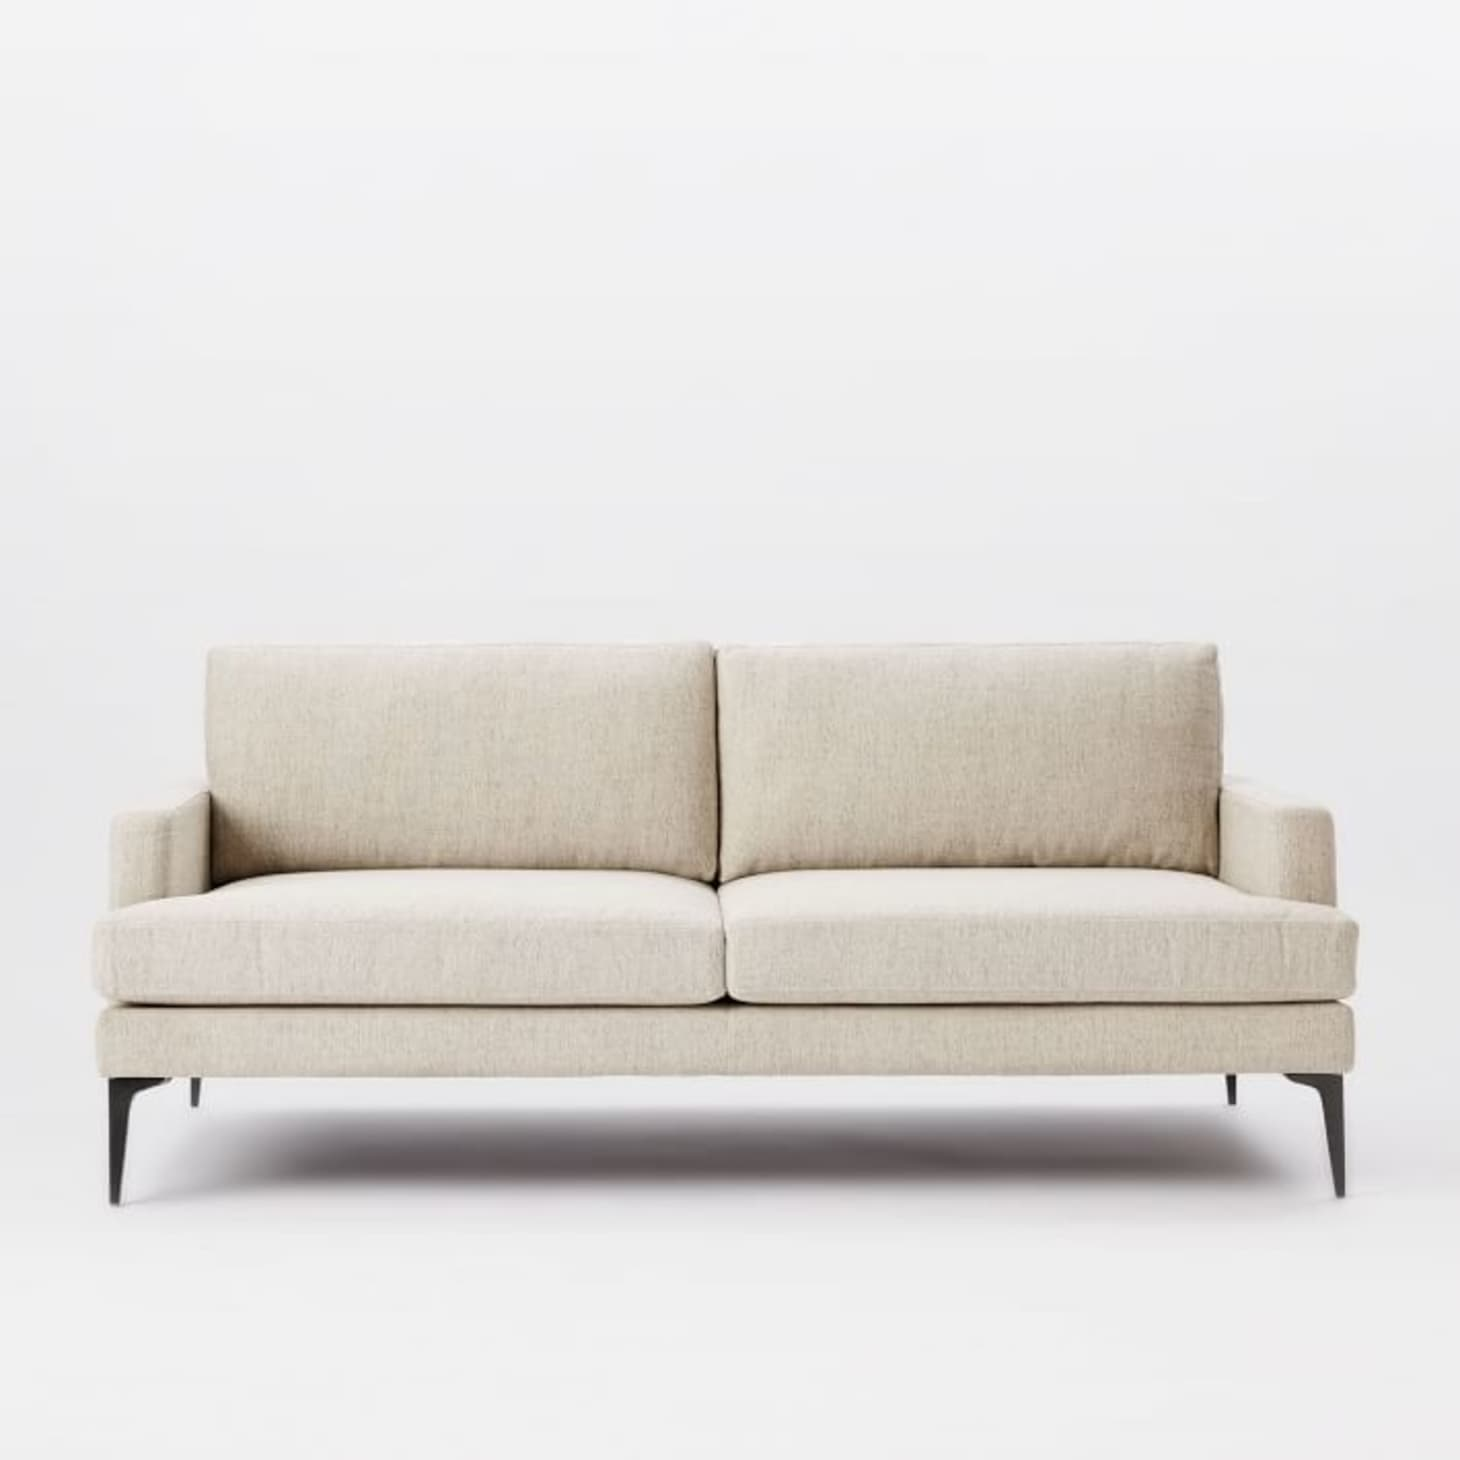 Remarkable The Most Comfortable Sofas At West Elm Tested Reviewed Theyellowbook Wood Chair Design Ideas Theyellowbookinfo